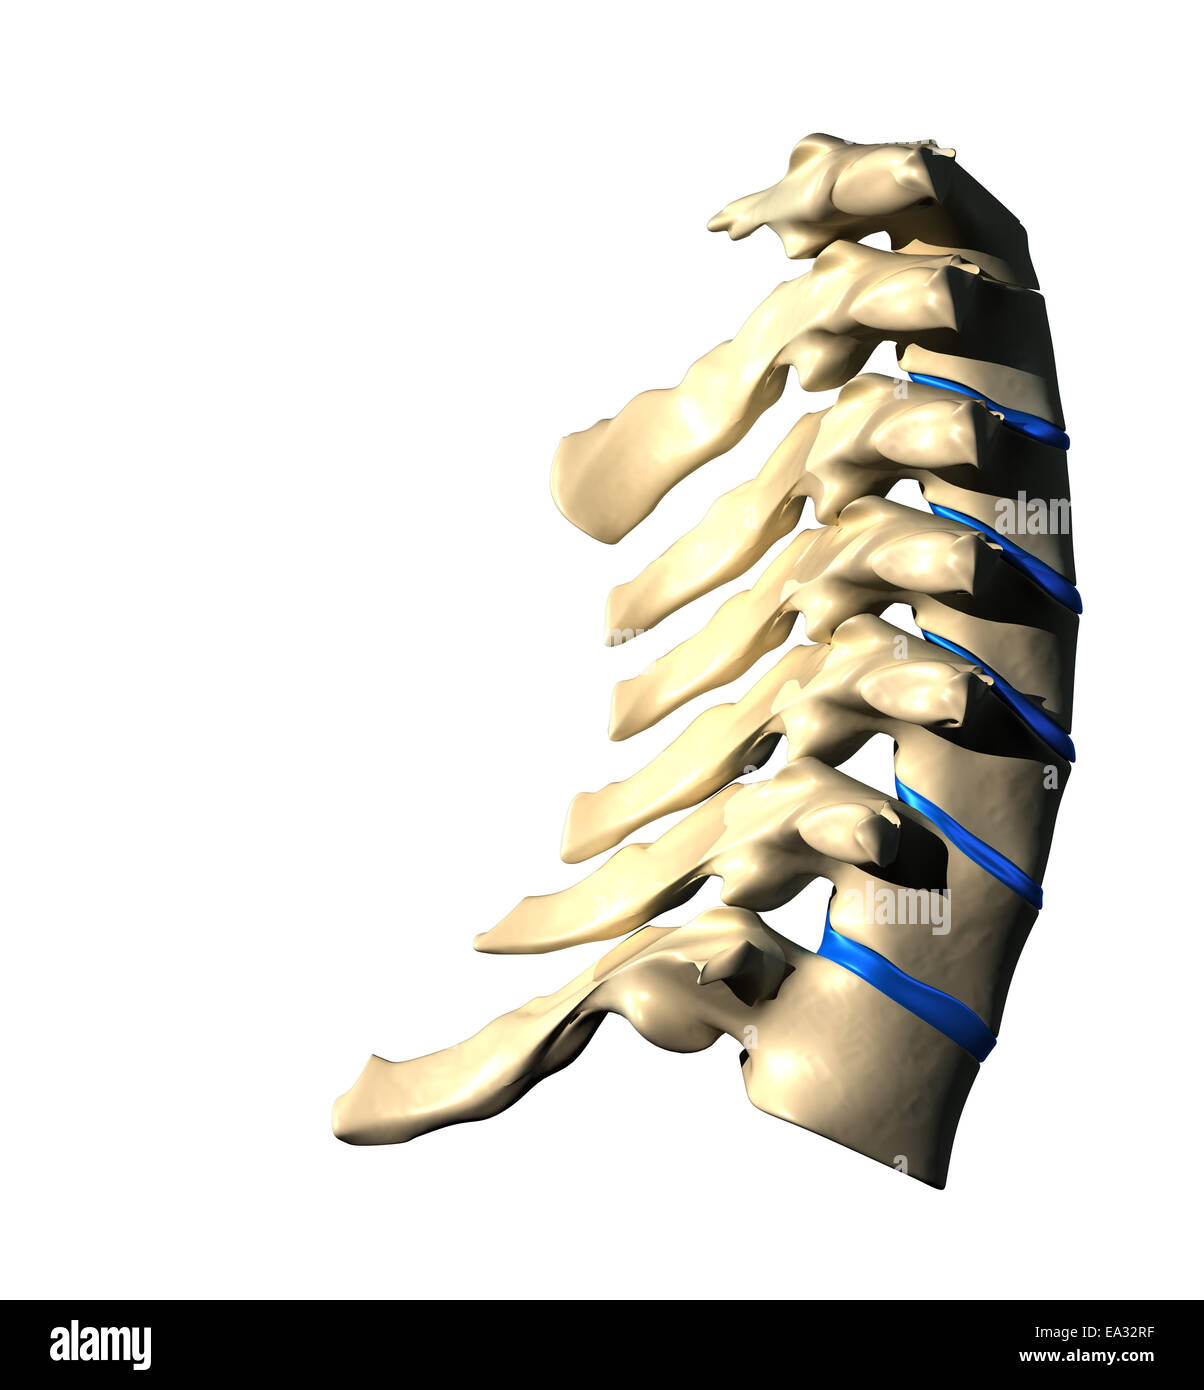 Cervical Spine Lateral View Side View Stock Photo 75056115 Alamy